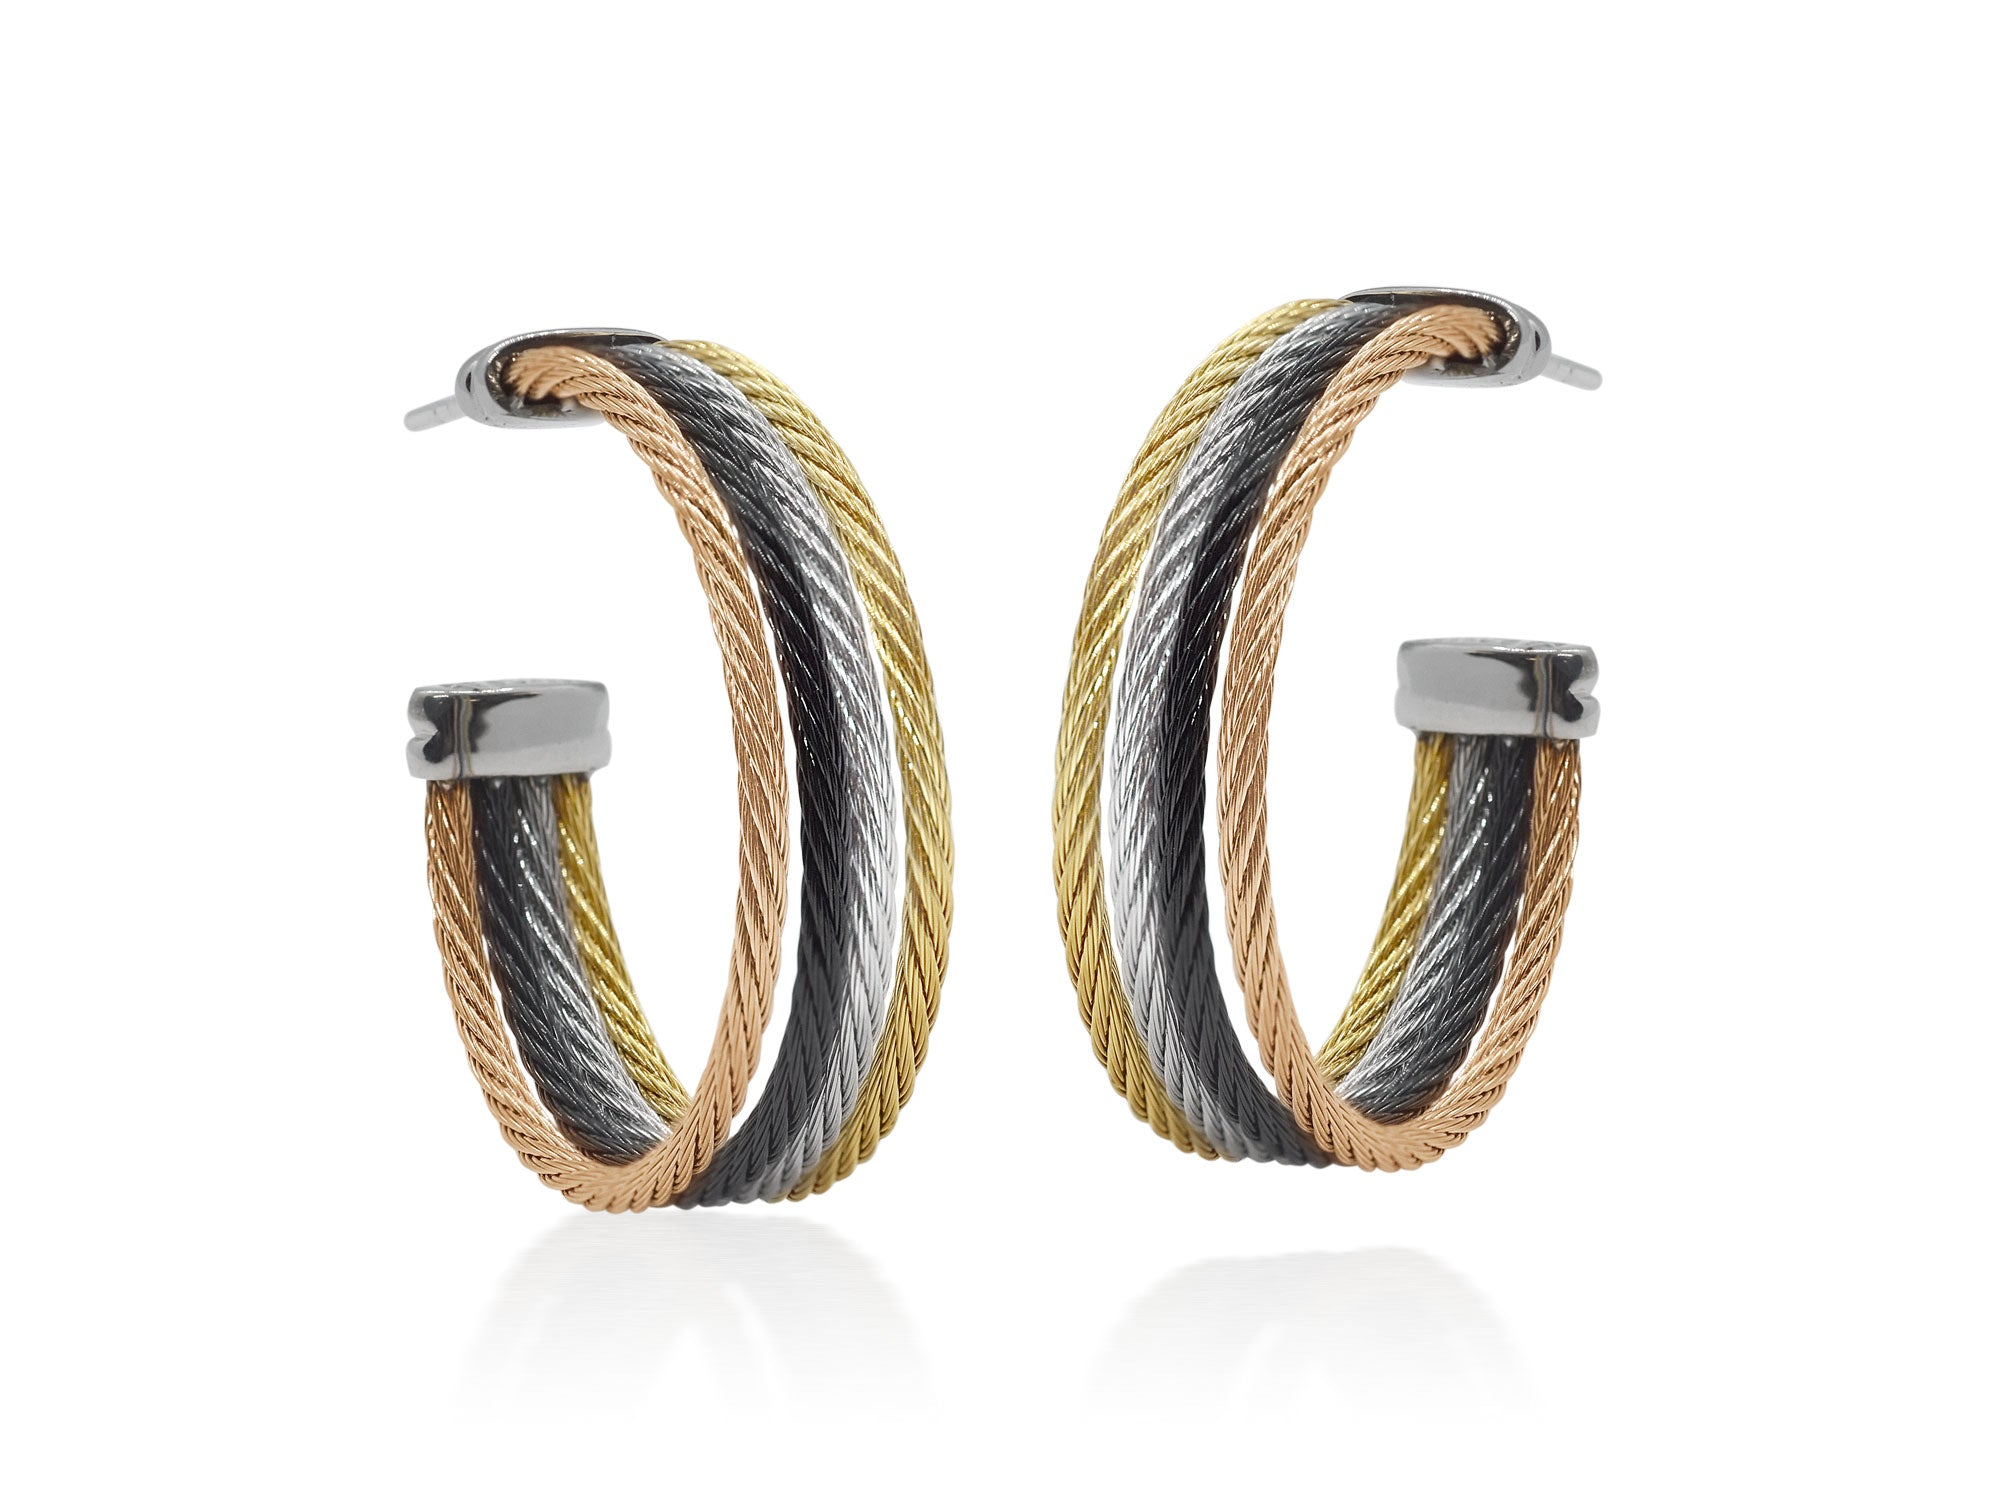 ALOR Classique Rose, Gold, Black, and Grey Cable Cuff Earrings